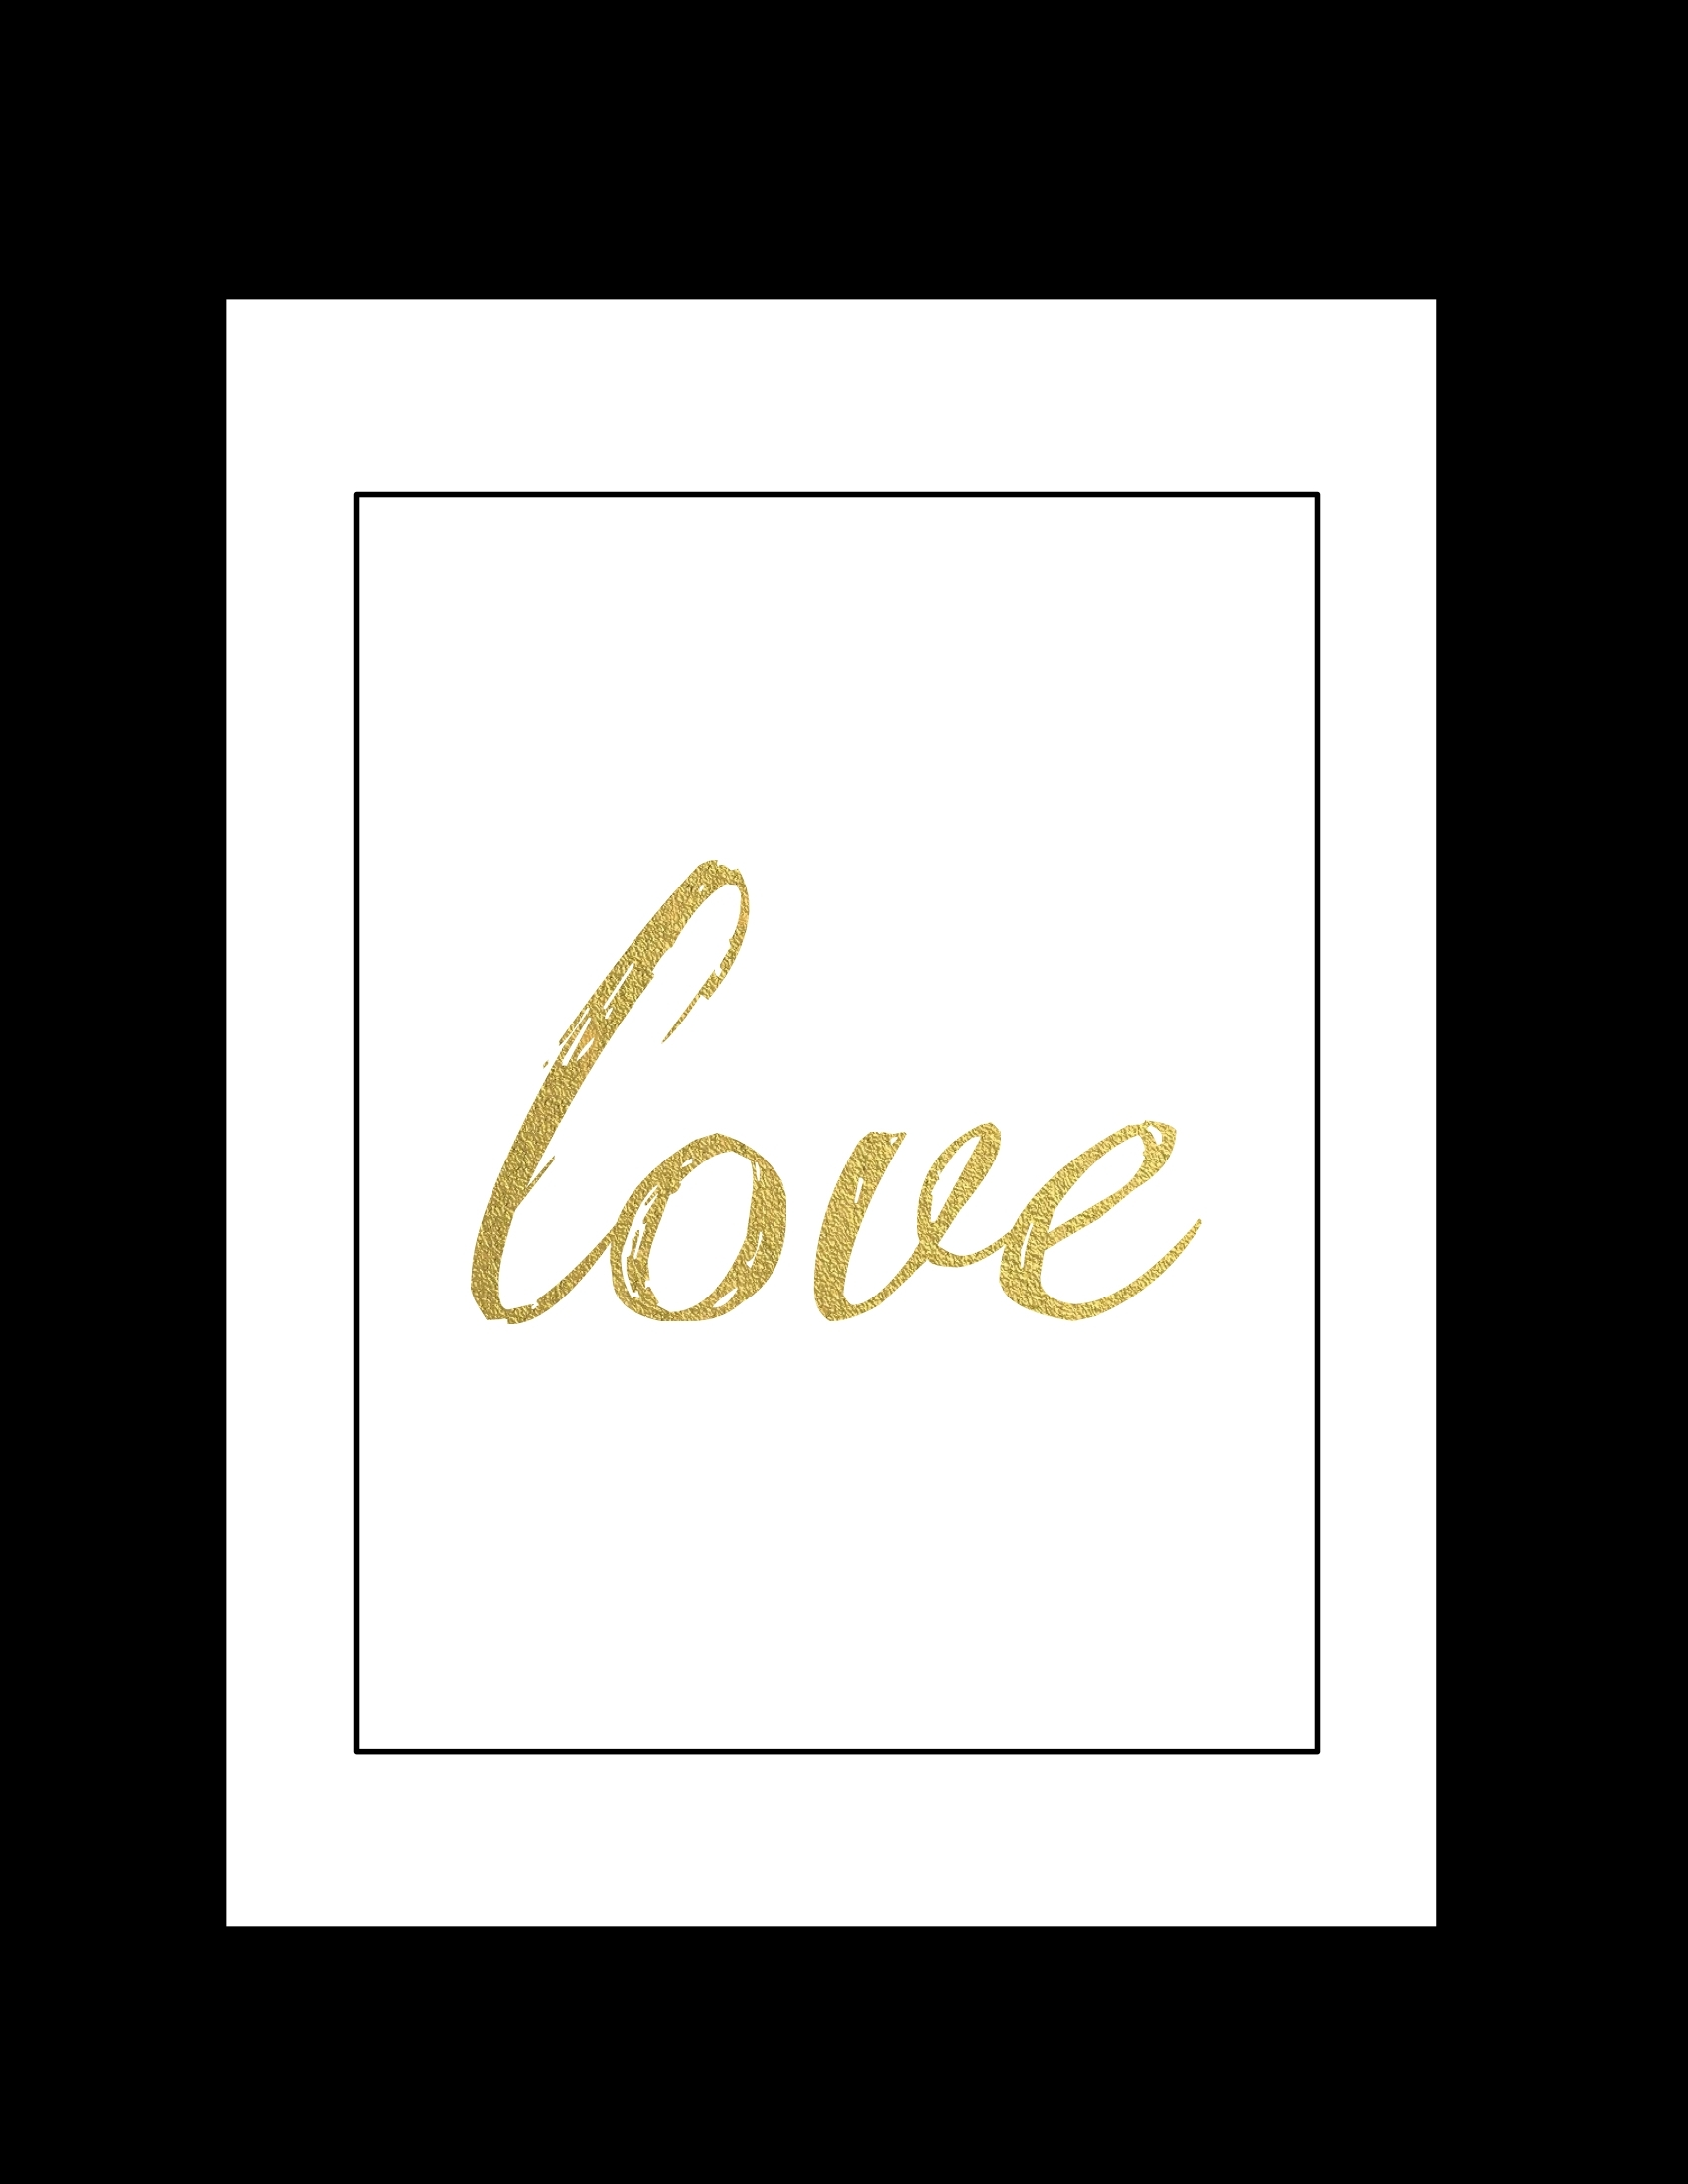 Free Printable Wall Art: Black And Gold Love - Paper Trail Design inside Latest Free Printable Wall Art Decors